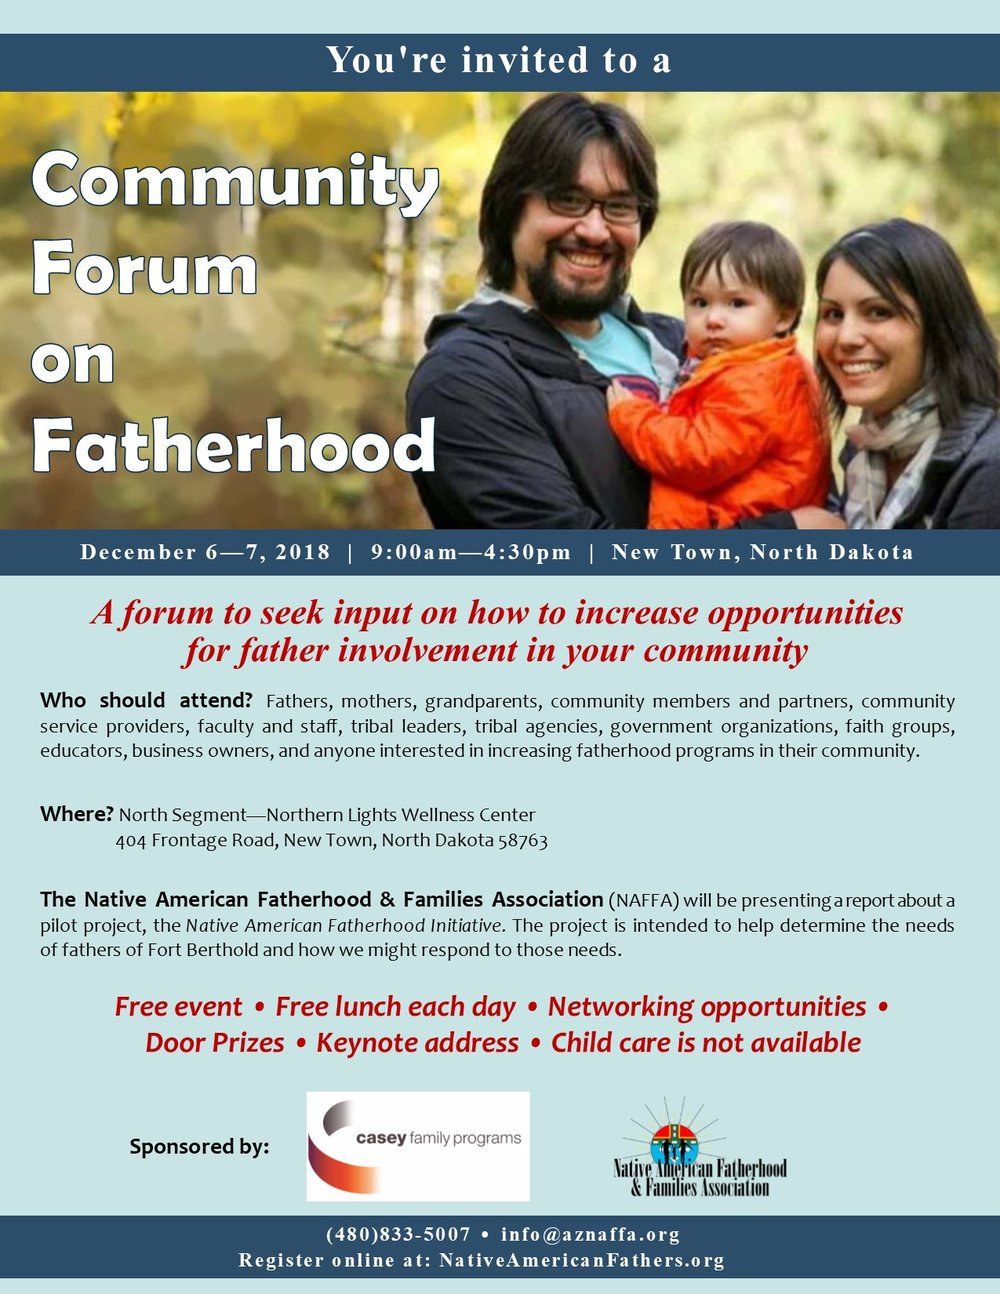 2018 Community Forum on Fatherhood Dec 6-7 2018.jpg